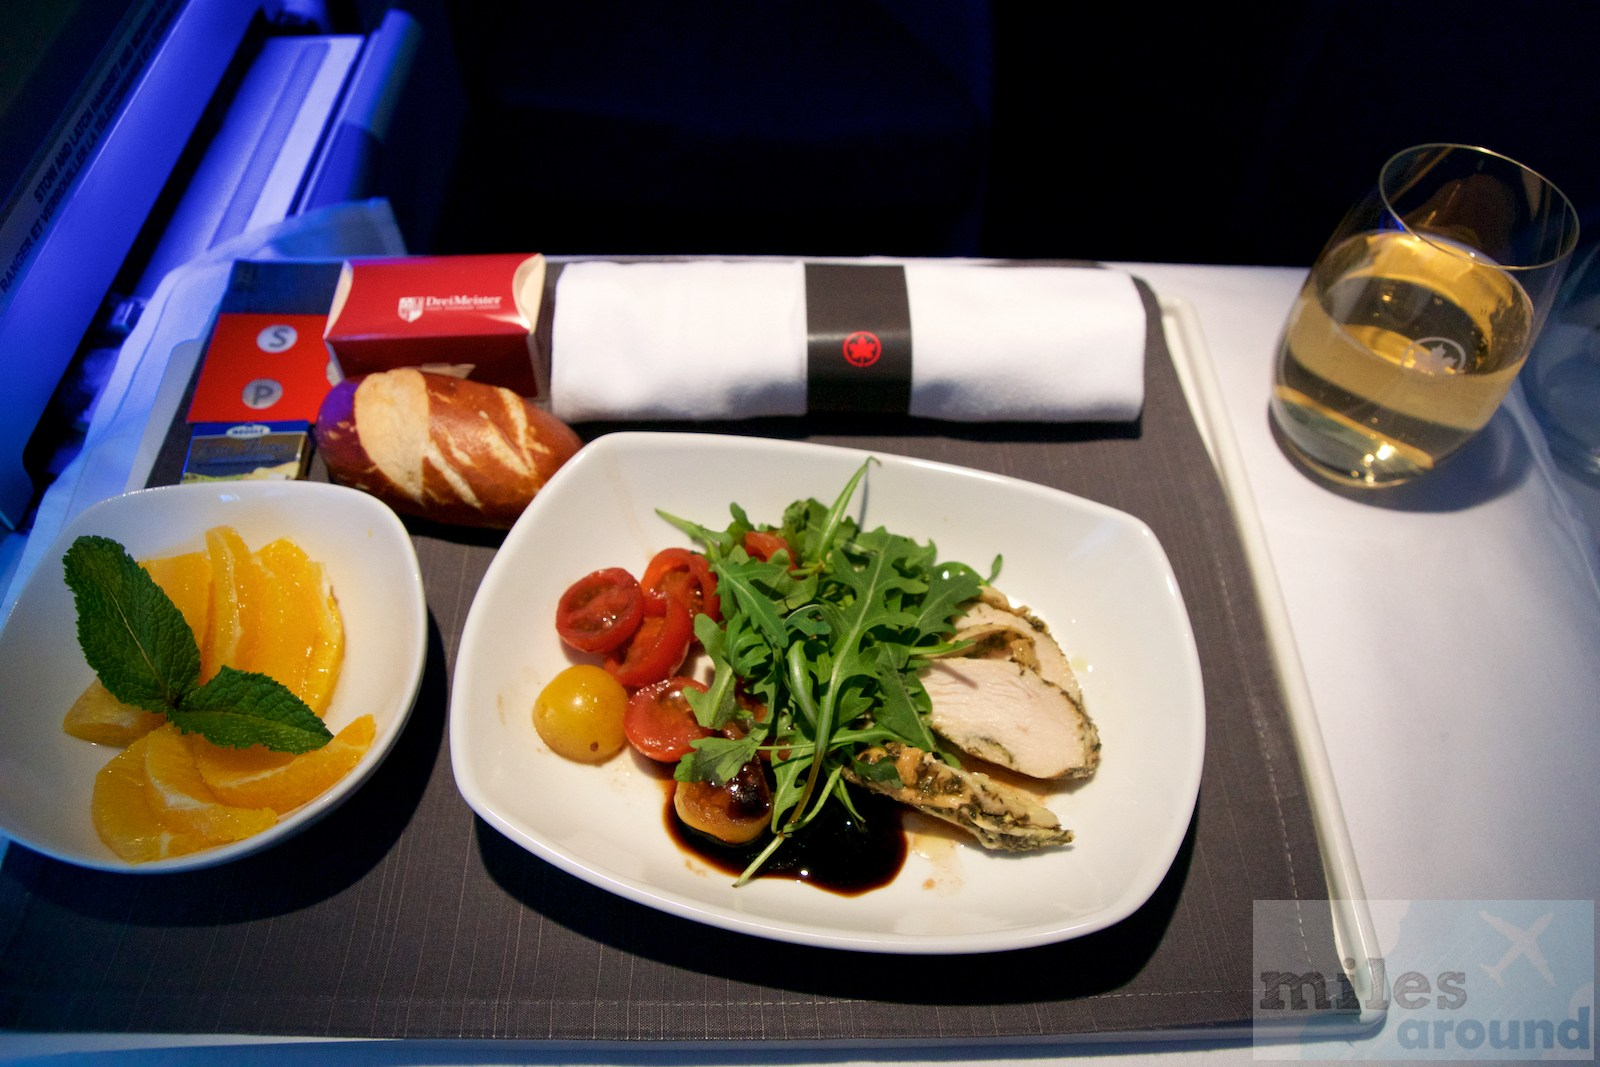 Air Canada Airbus A330 300 Business class inflight meal food Light meal cold plate with lemon and thyme chicken cherry tomato salad and arugula